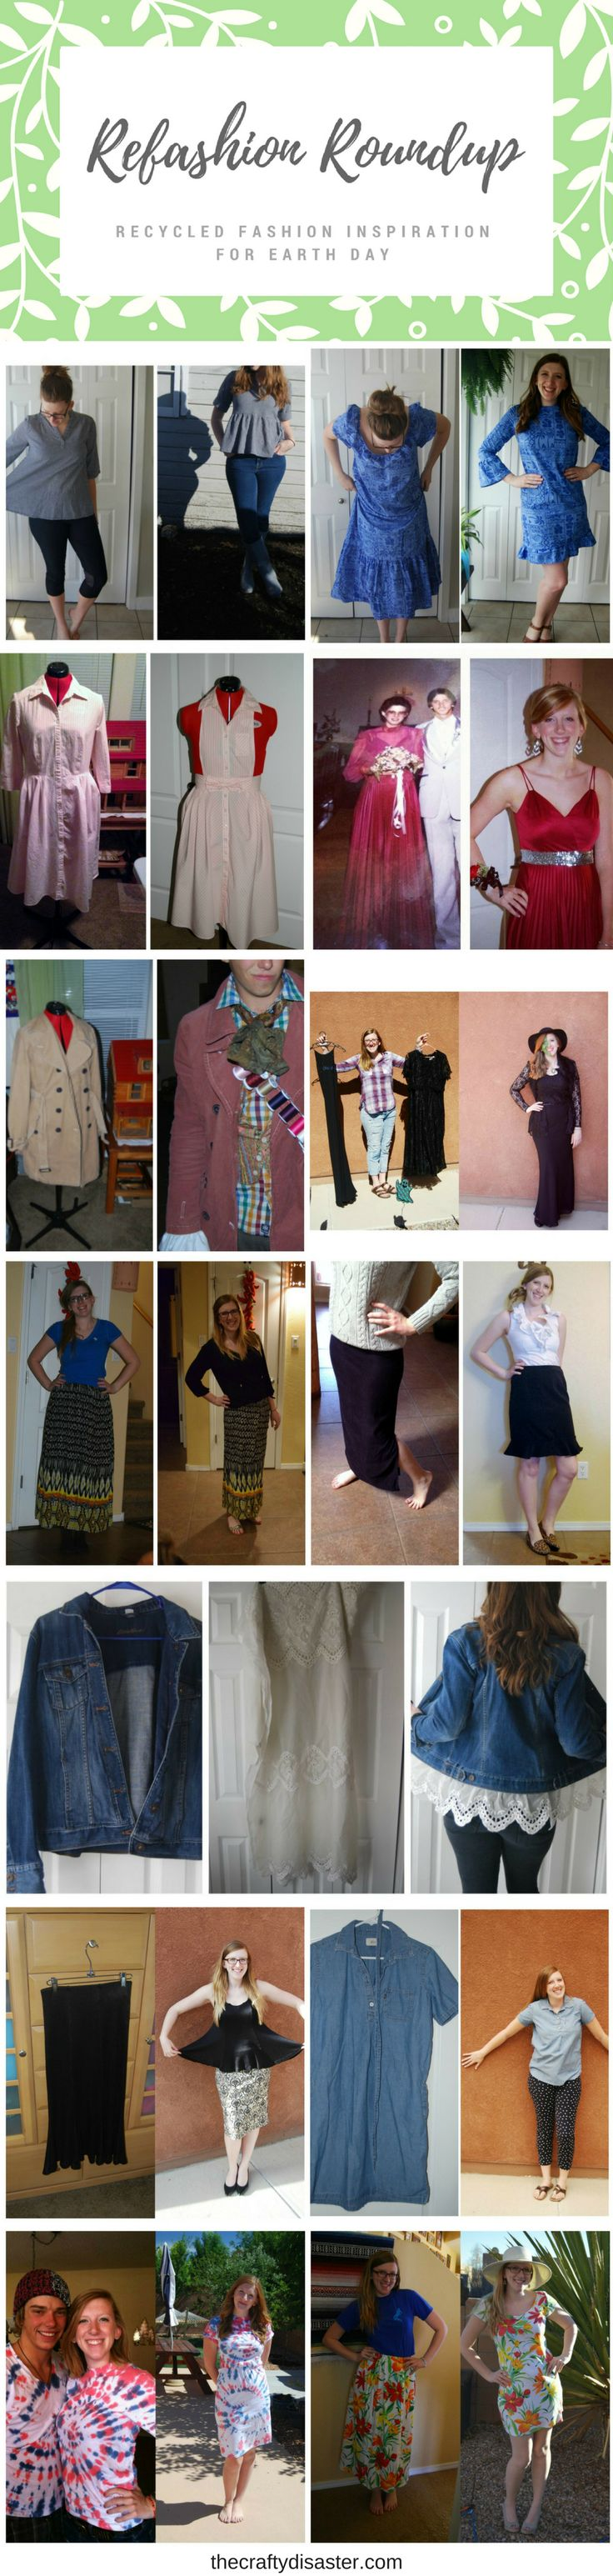 Earth Day: Refashion Roundup - The Crafty Disaster